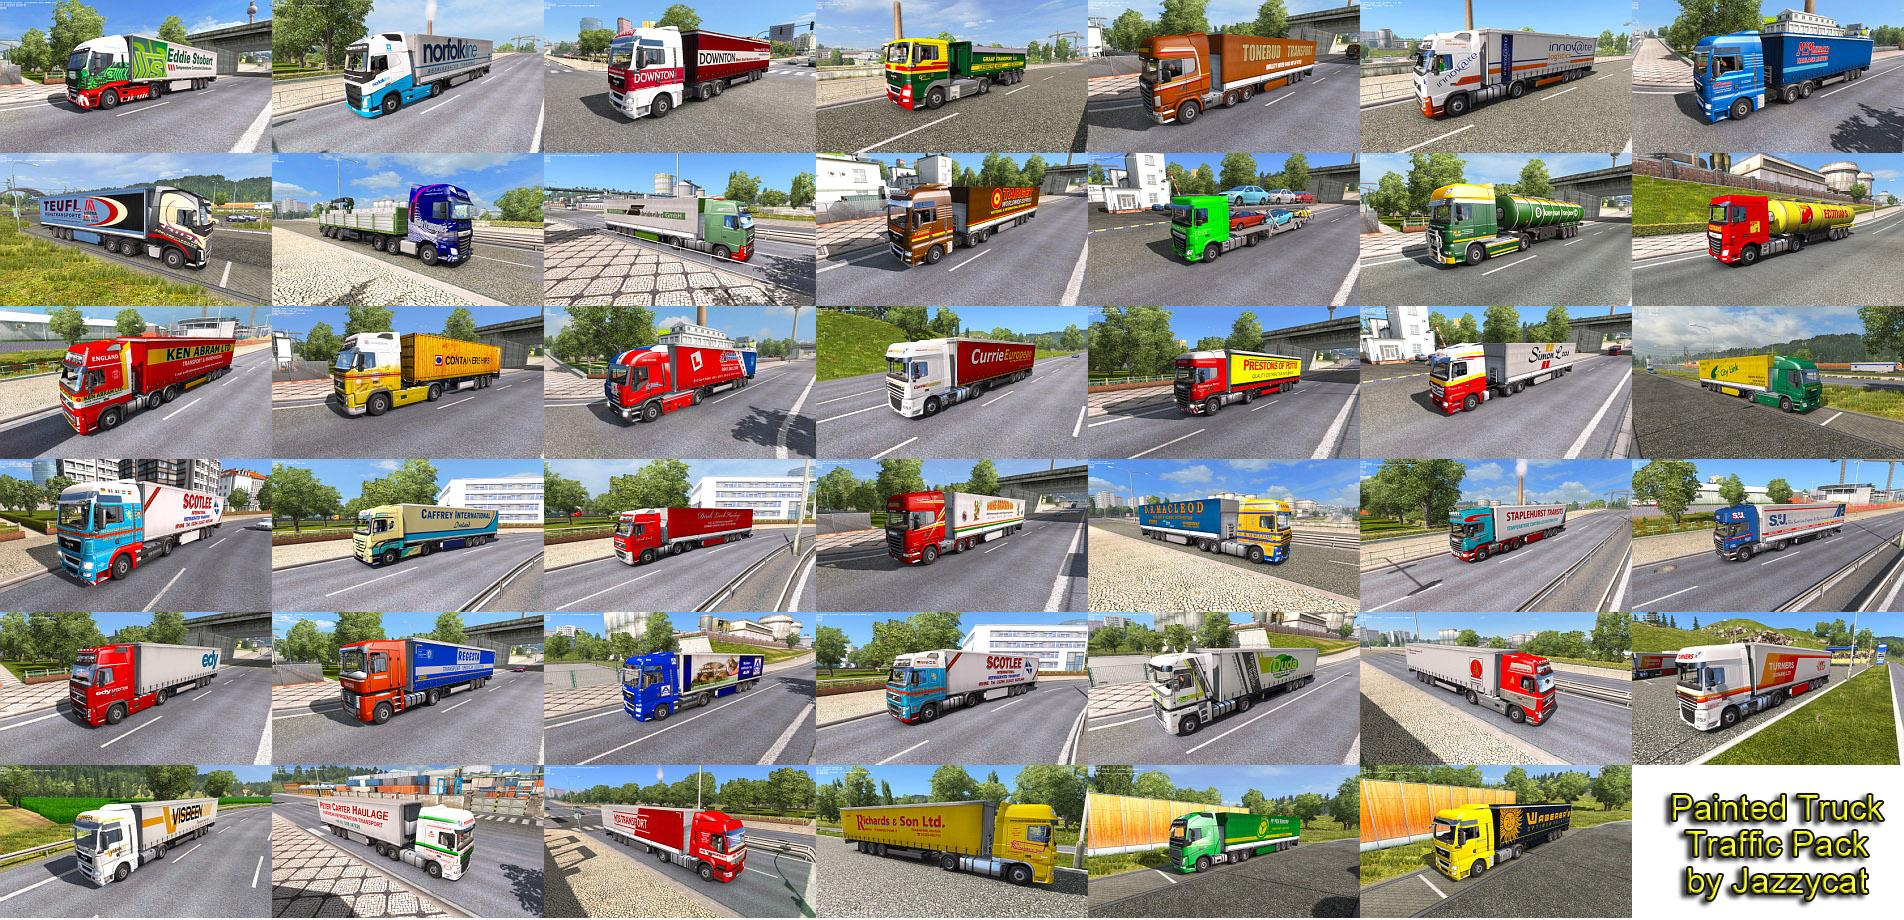 Painted Truck Traffic Pack By Jazzycat V2 1 Ets 2 Euro